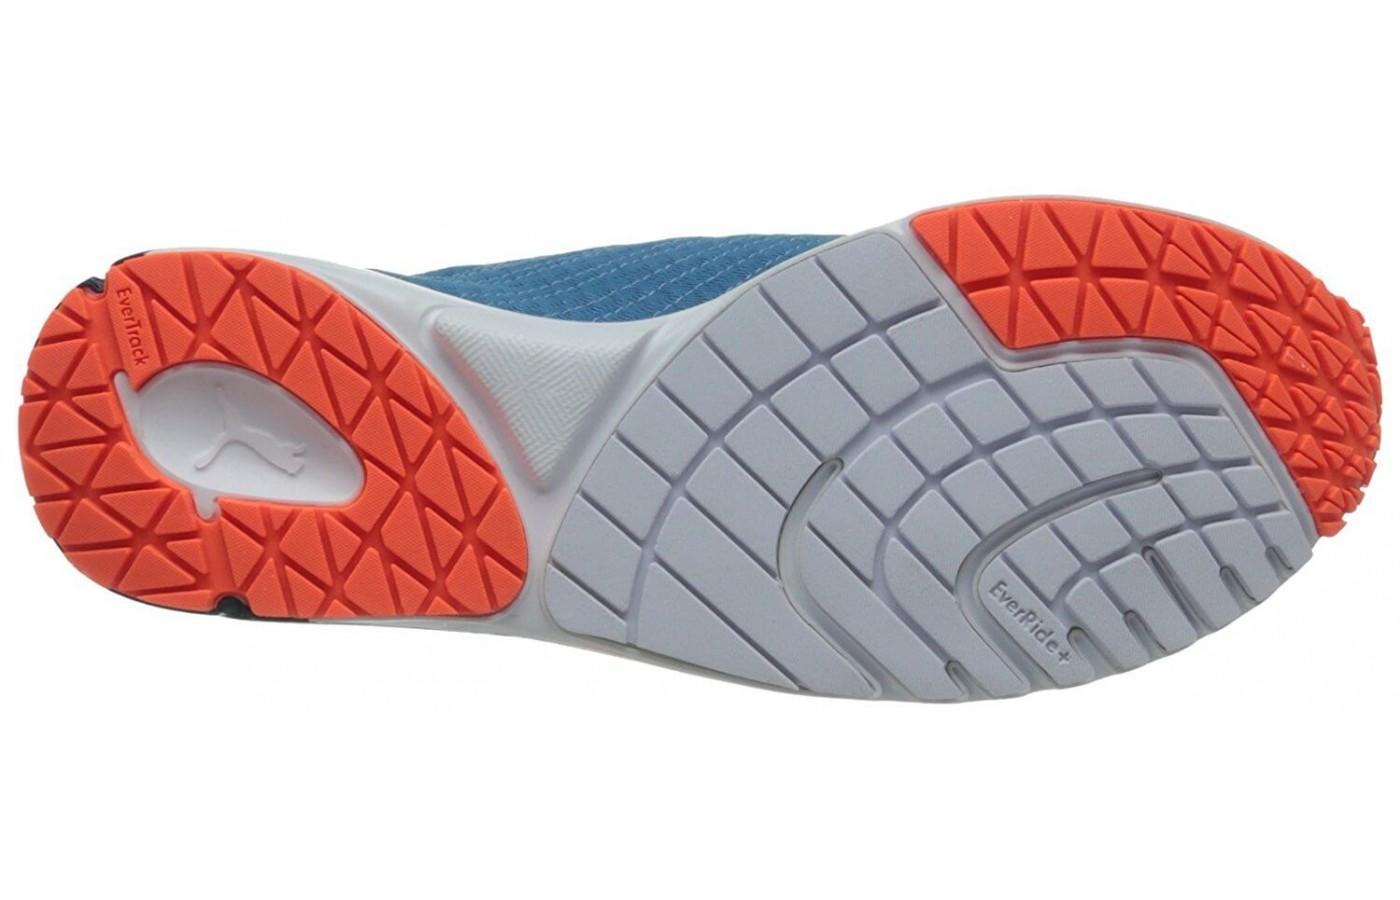 The durable outsole will last on any road surface